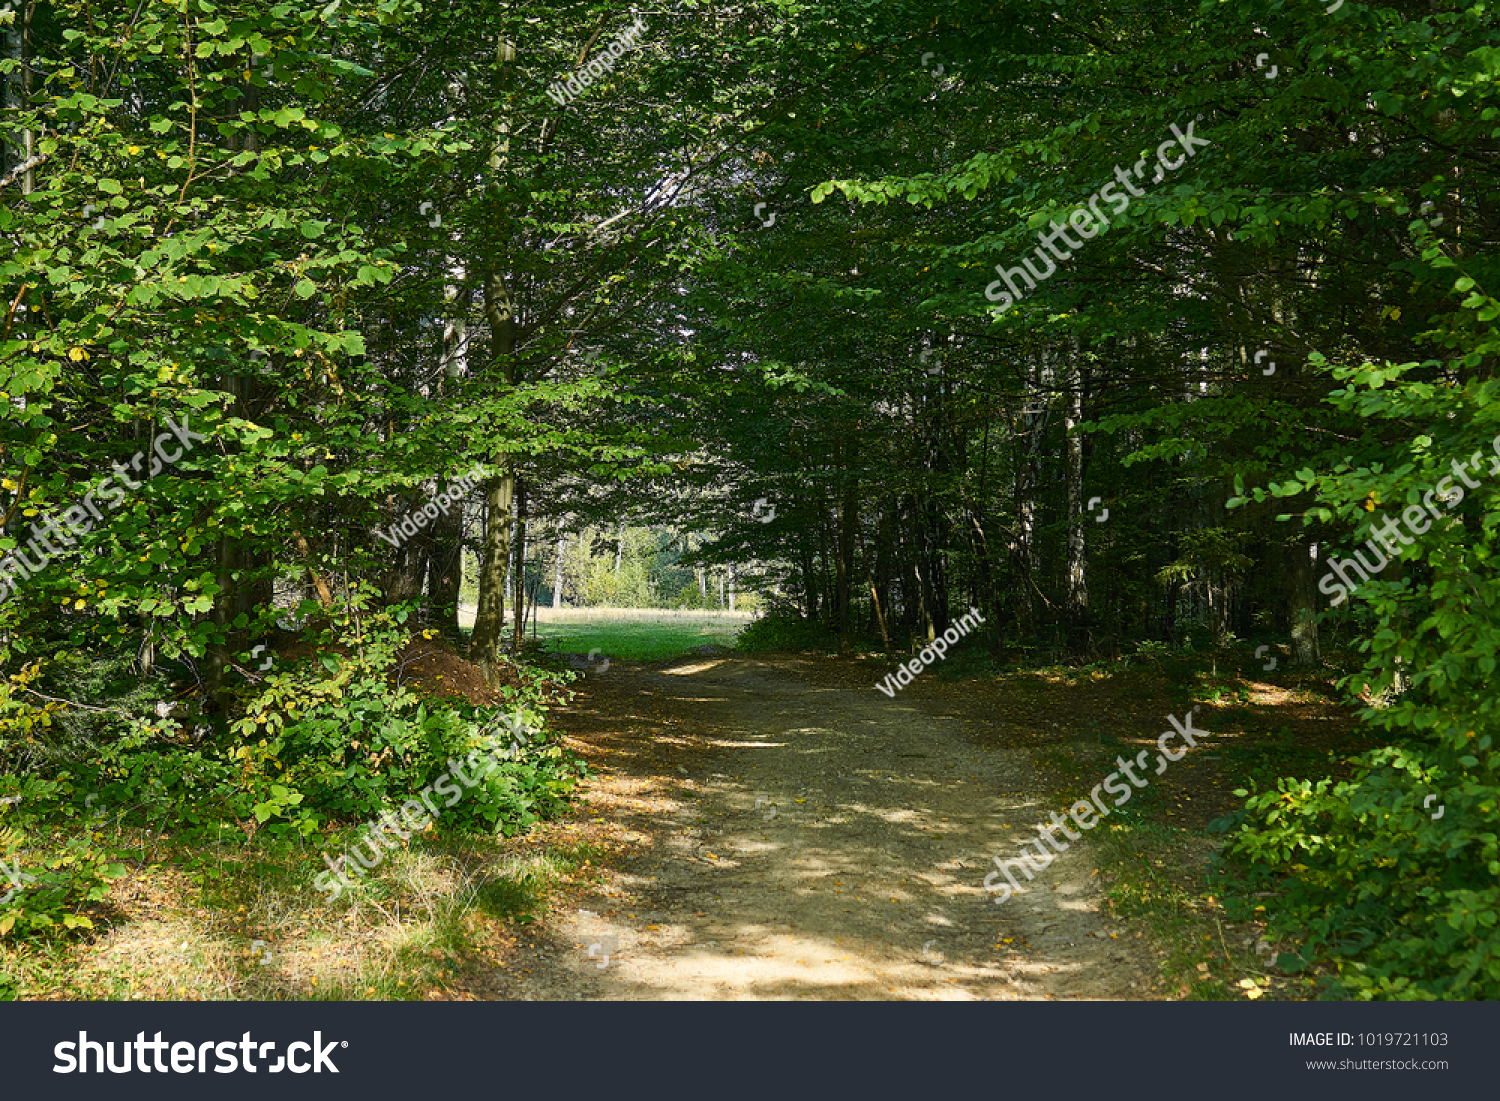 Slender Tall Trees Forest Yellowgreen Color Stock Photo (Royalty ...